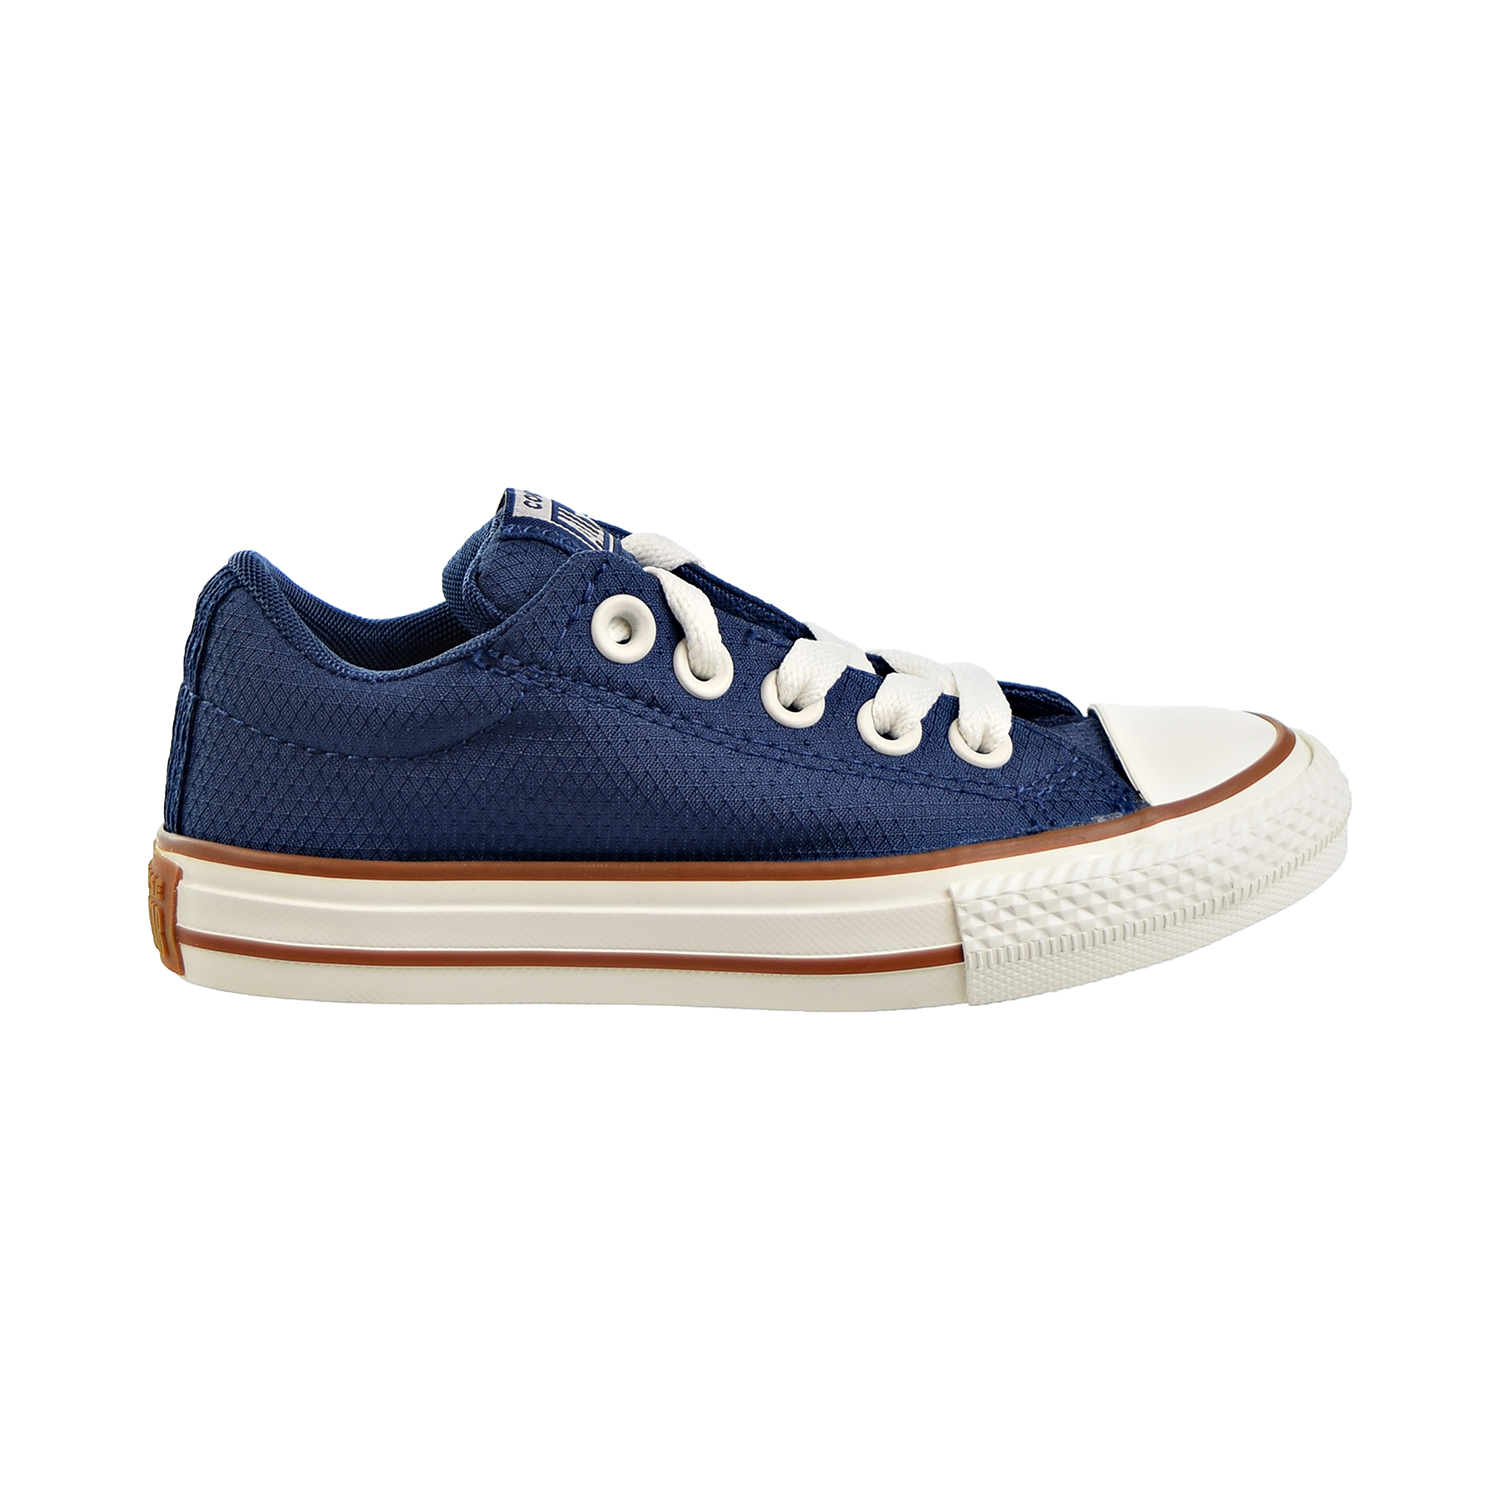 Converse Kids Chuck Taylor All Star Street Slip on Low Top Sneaker